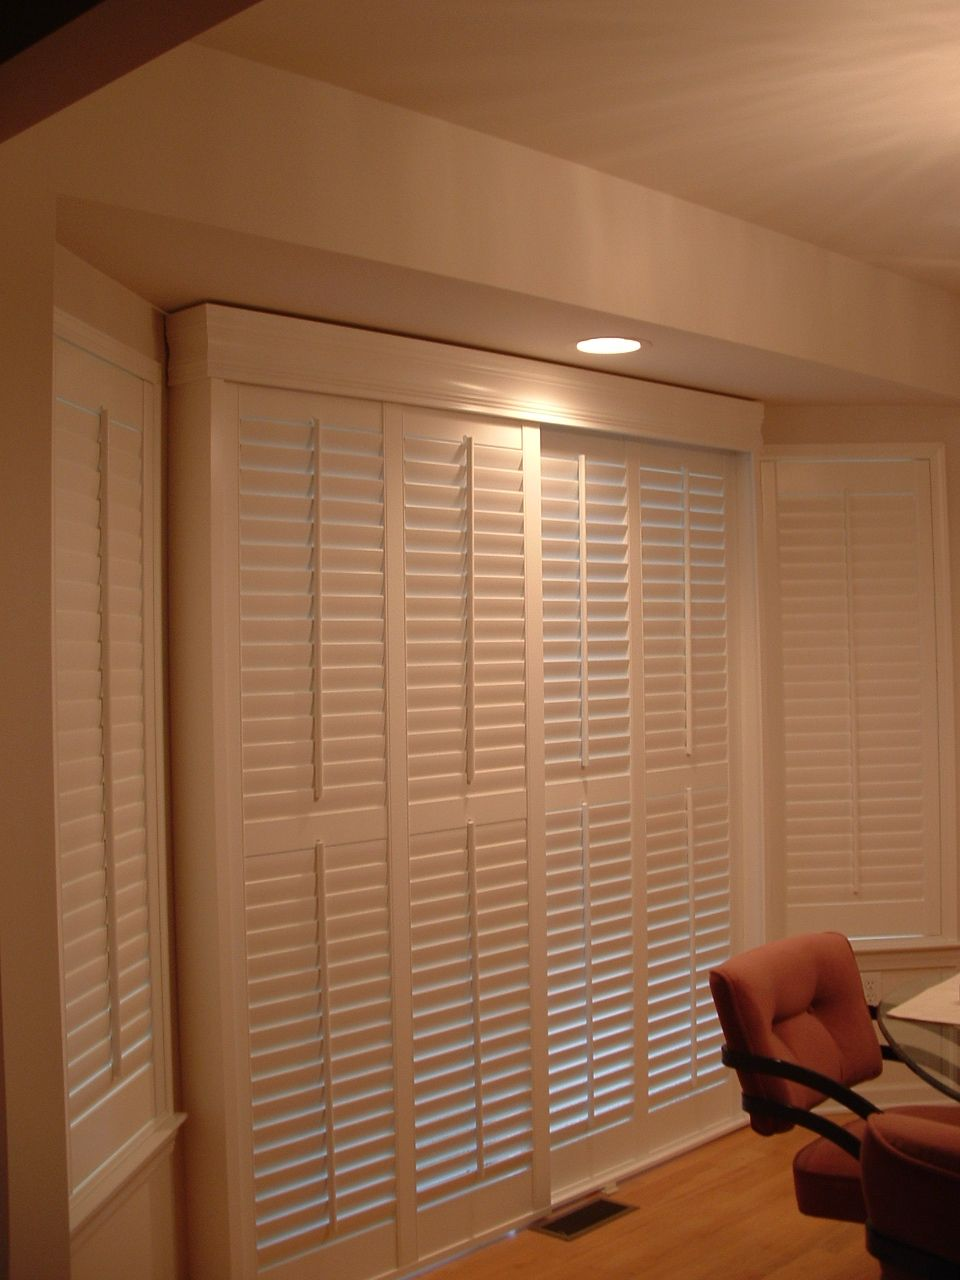 Indoor shutters on track system. Shutters Pinterest